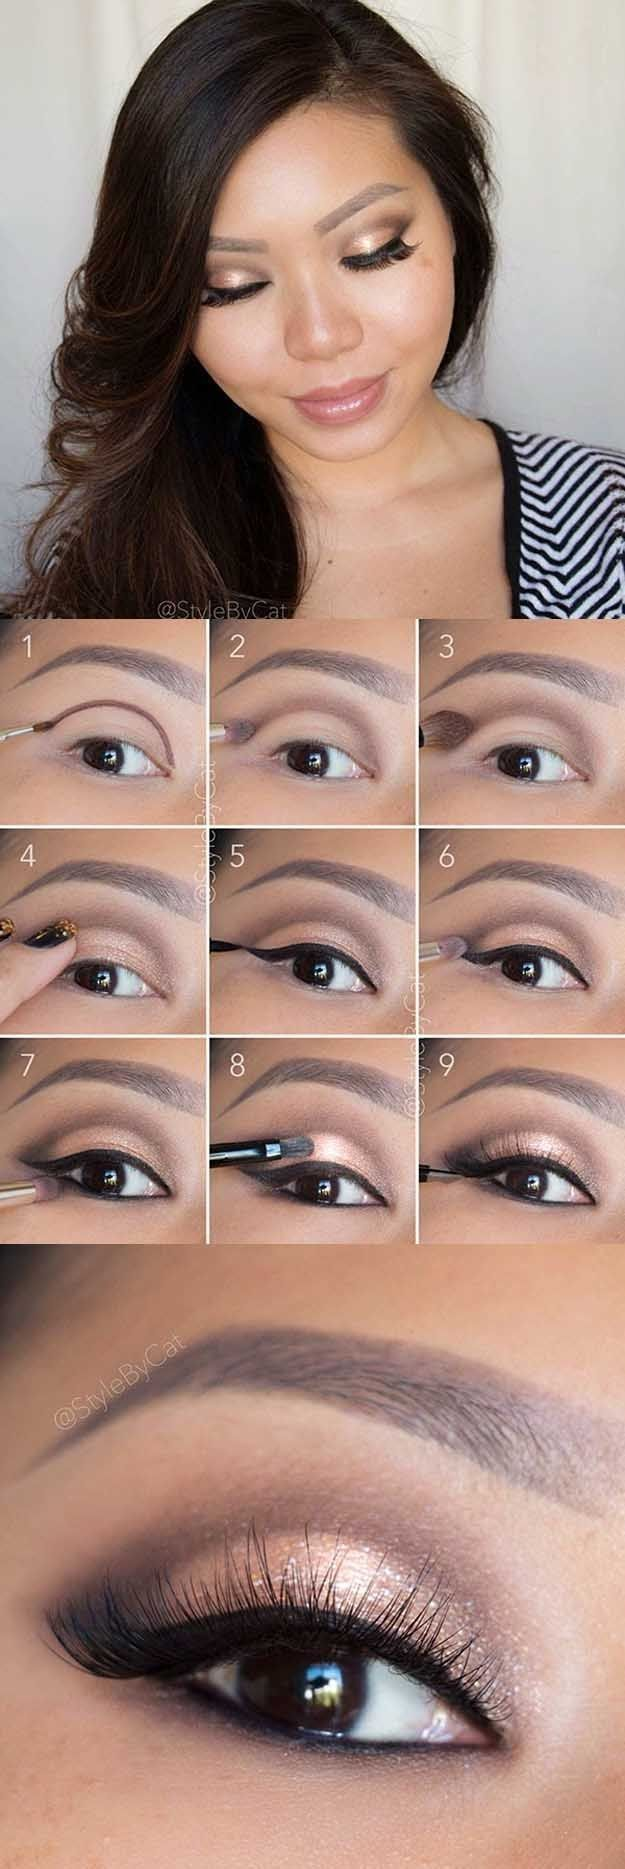 Makeup Tips for Asian Women  Soft Rose Gold Smokey Eye Tutorial  Easy Step Through  Makeup Tips for Asian Women  Soft Rose Gold Smokey Eye Tutorial  Easy Step Through Mak...